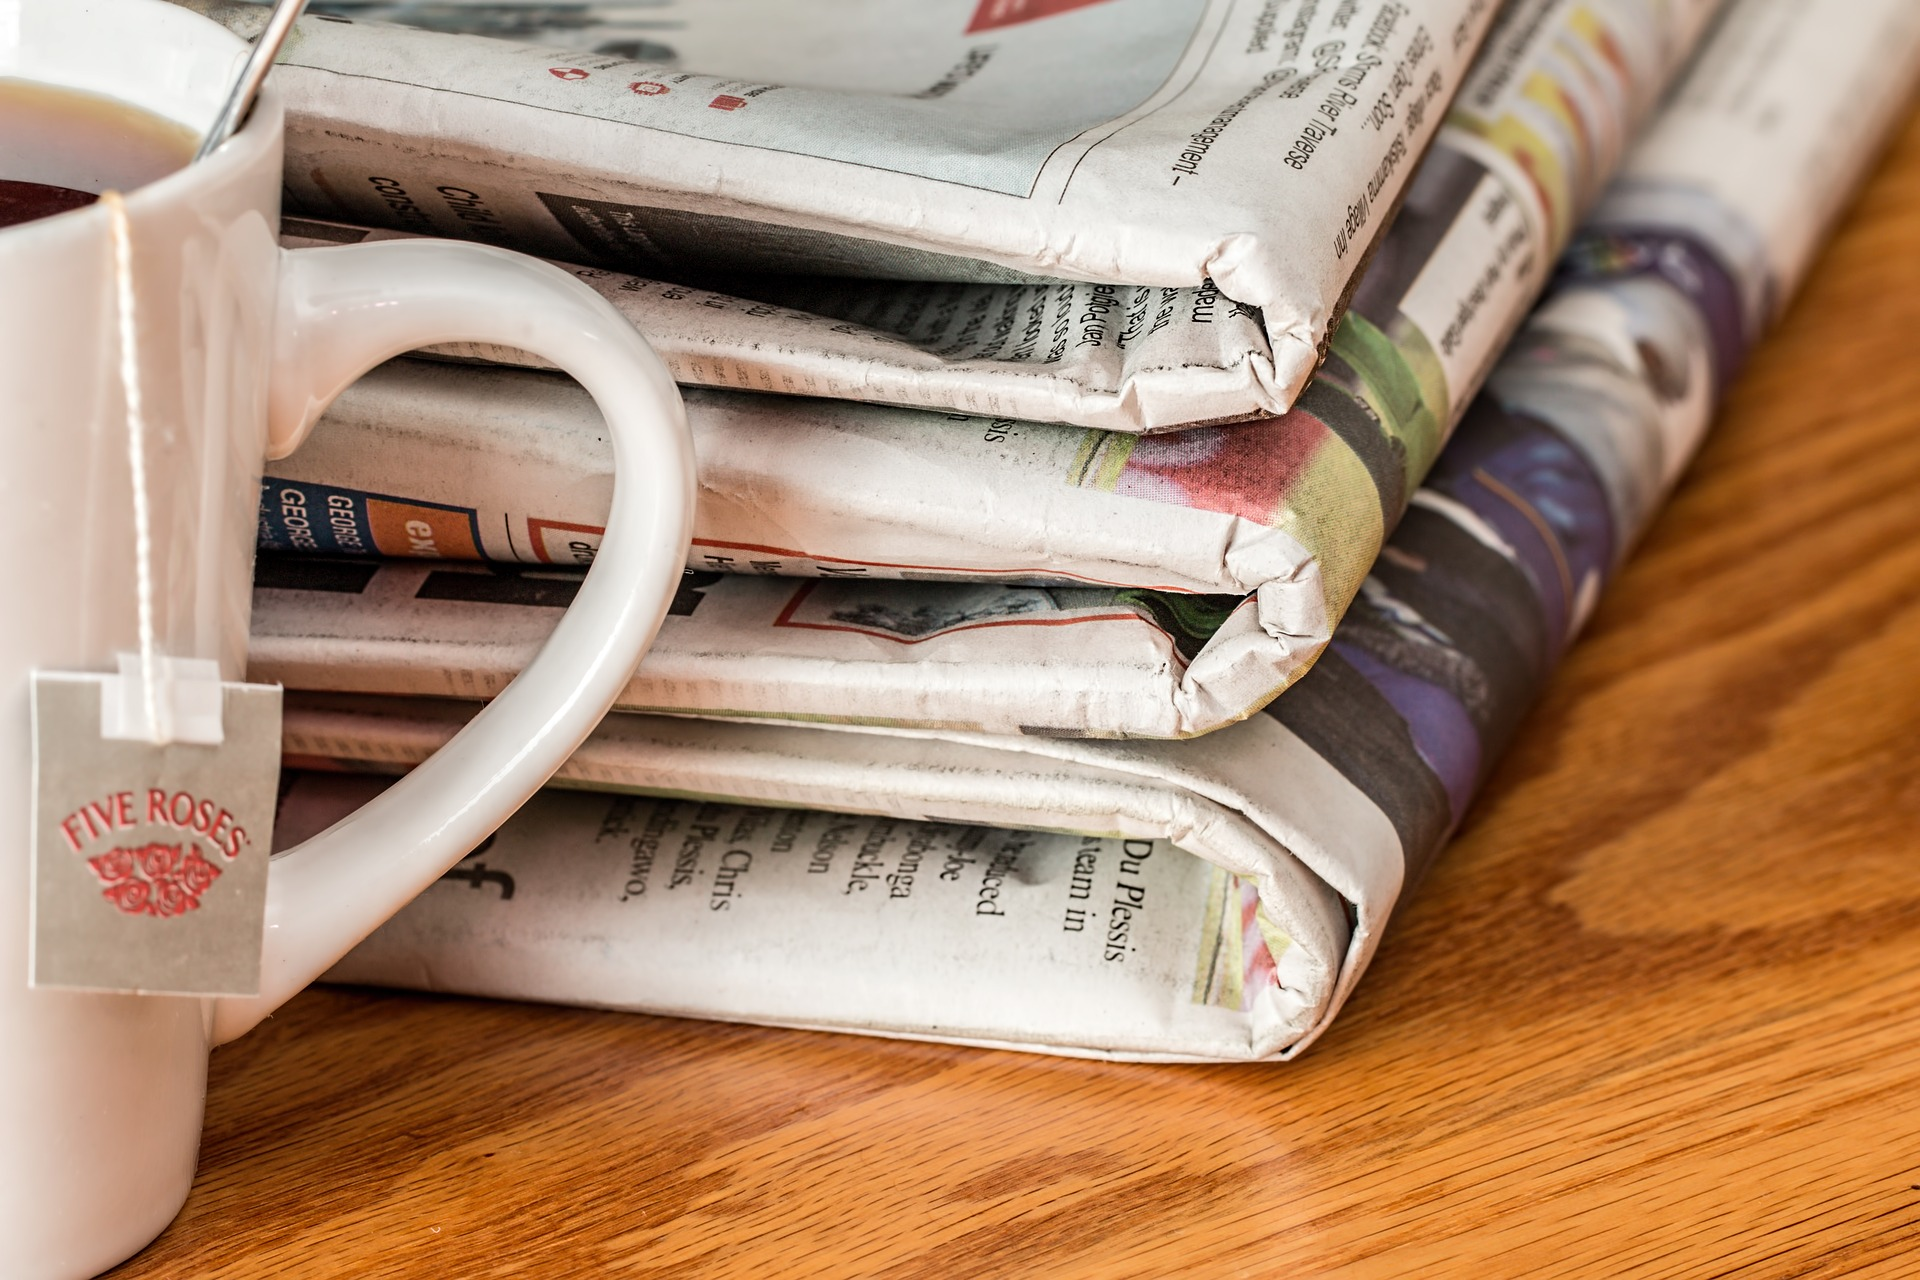 A pile of newspapers sit next to a morning tea cup.